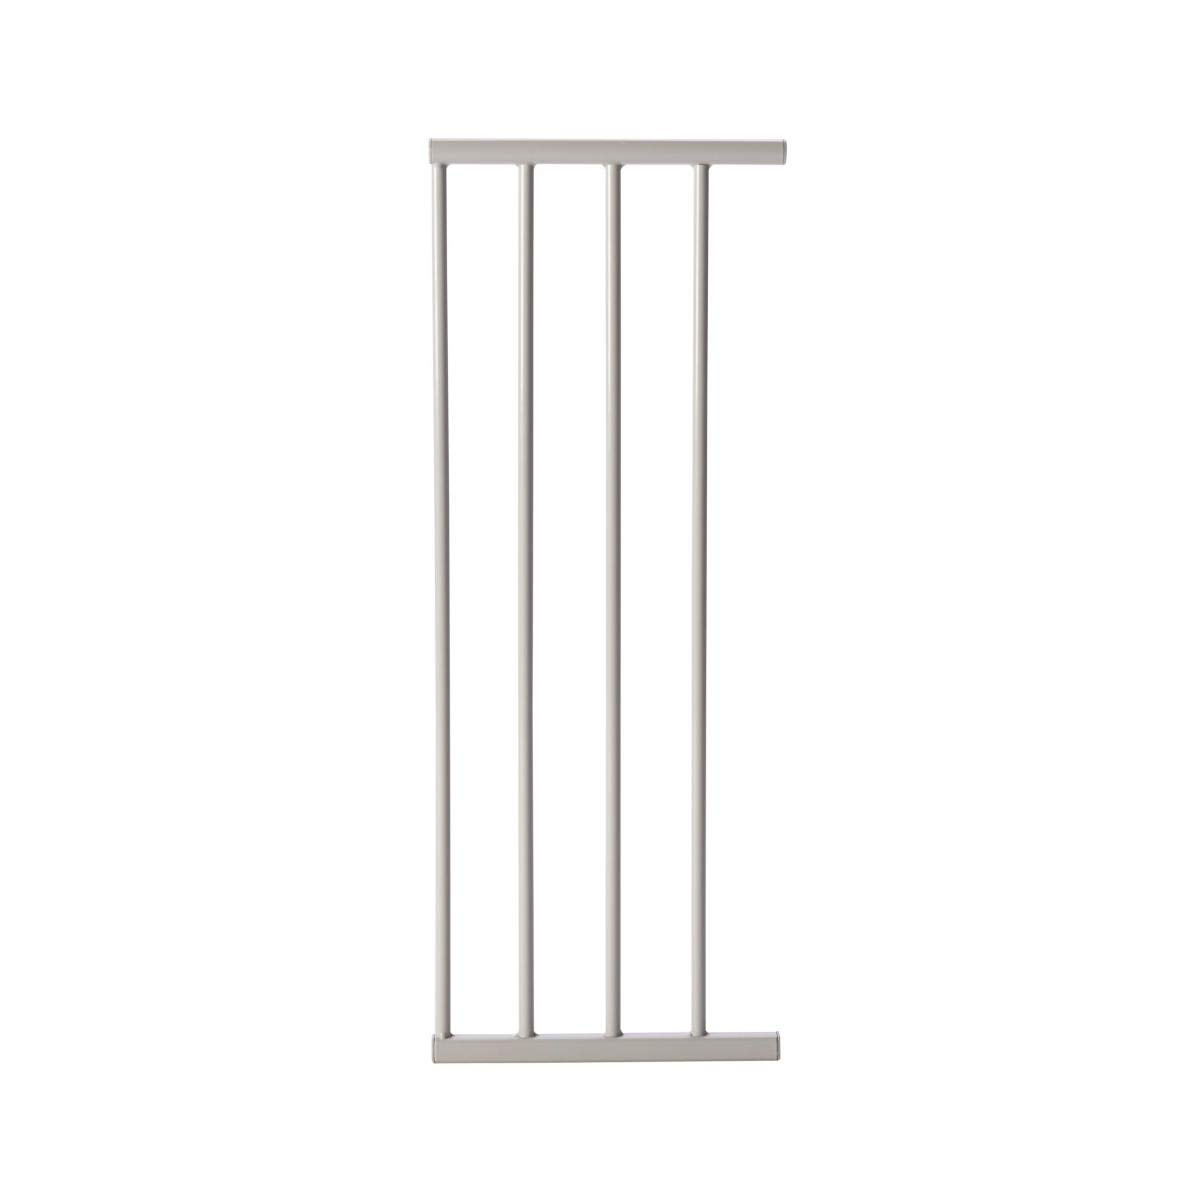 North States 4-Bar Extension for Arched Auto-Close Baby Gate with Easy-Step: Add one extension for a gate up to 49.13'' wide (Adds 10.75'' width, Gray) by North States